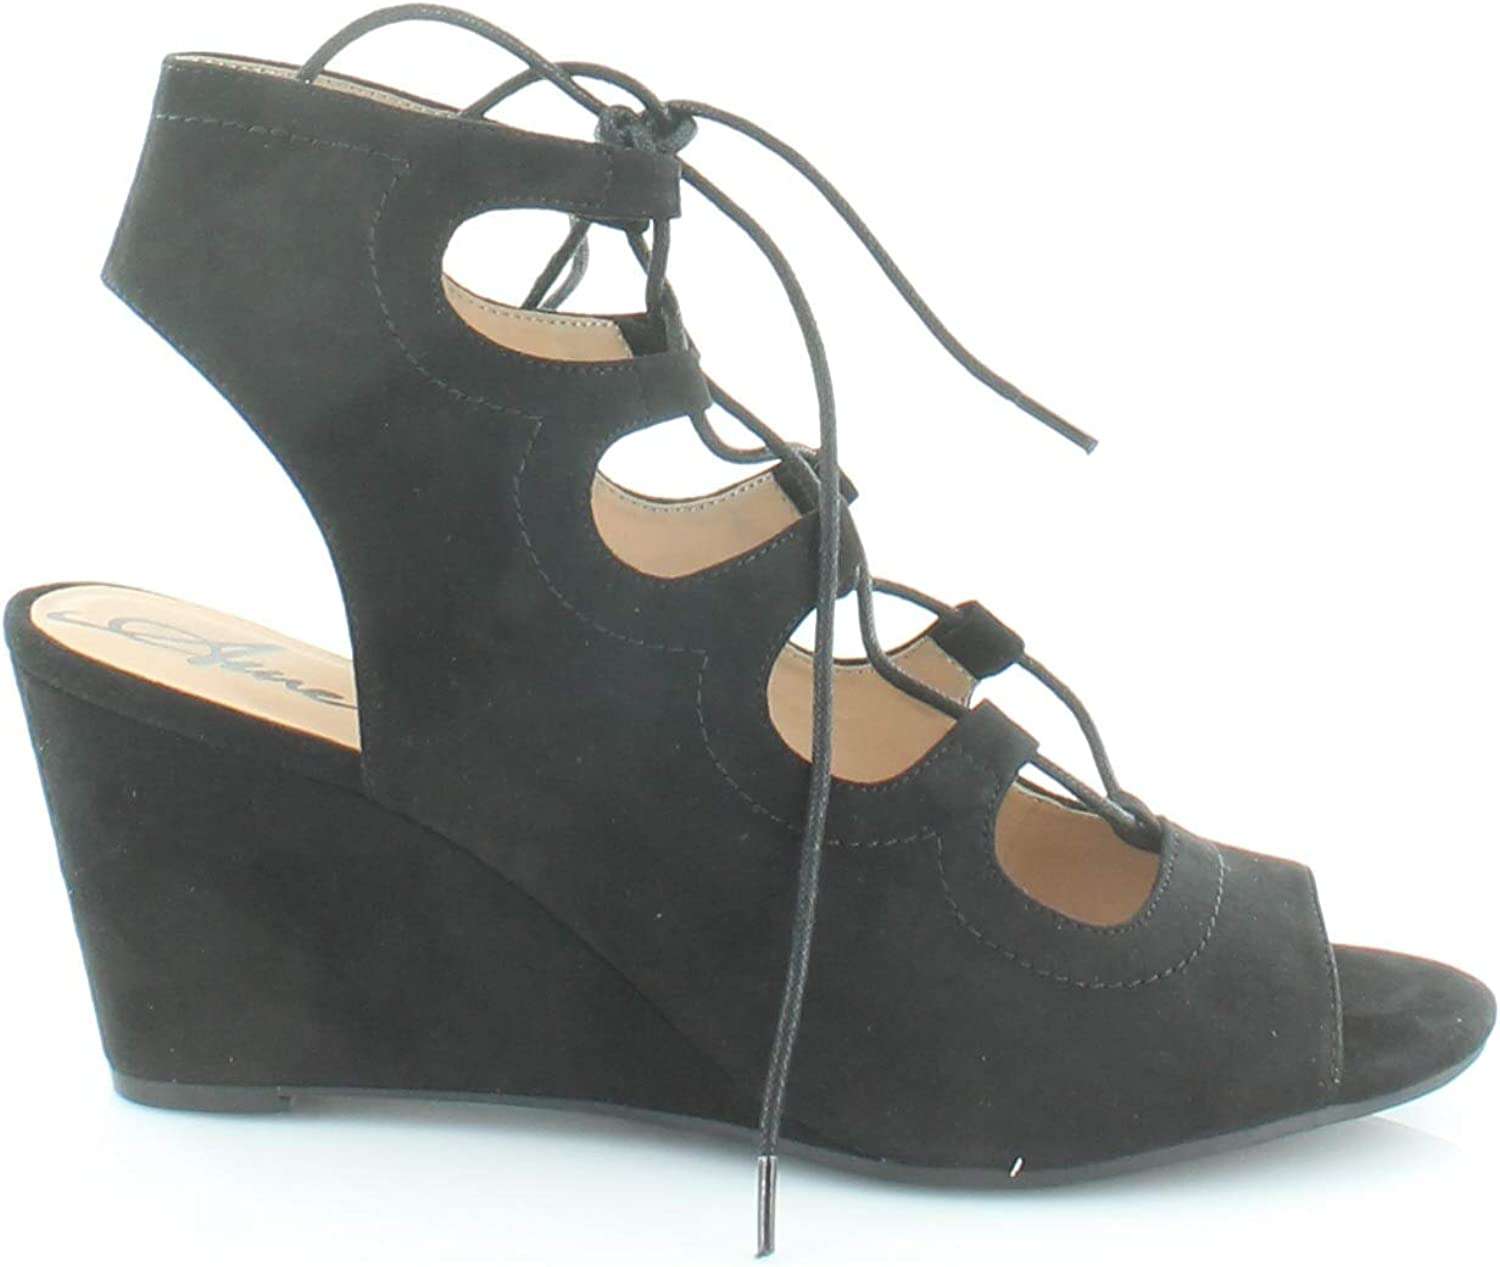 American Rag Womens Suriya Lace-Up Demi Wedge Toe Sandals Black 10 US